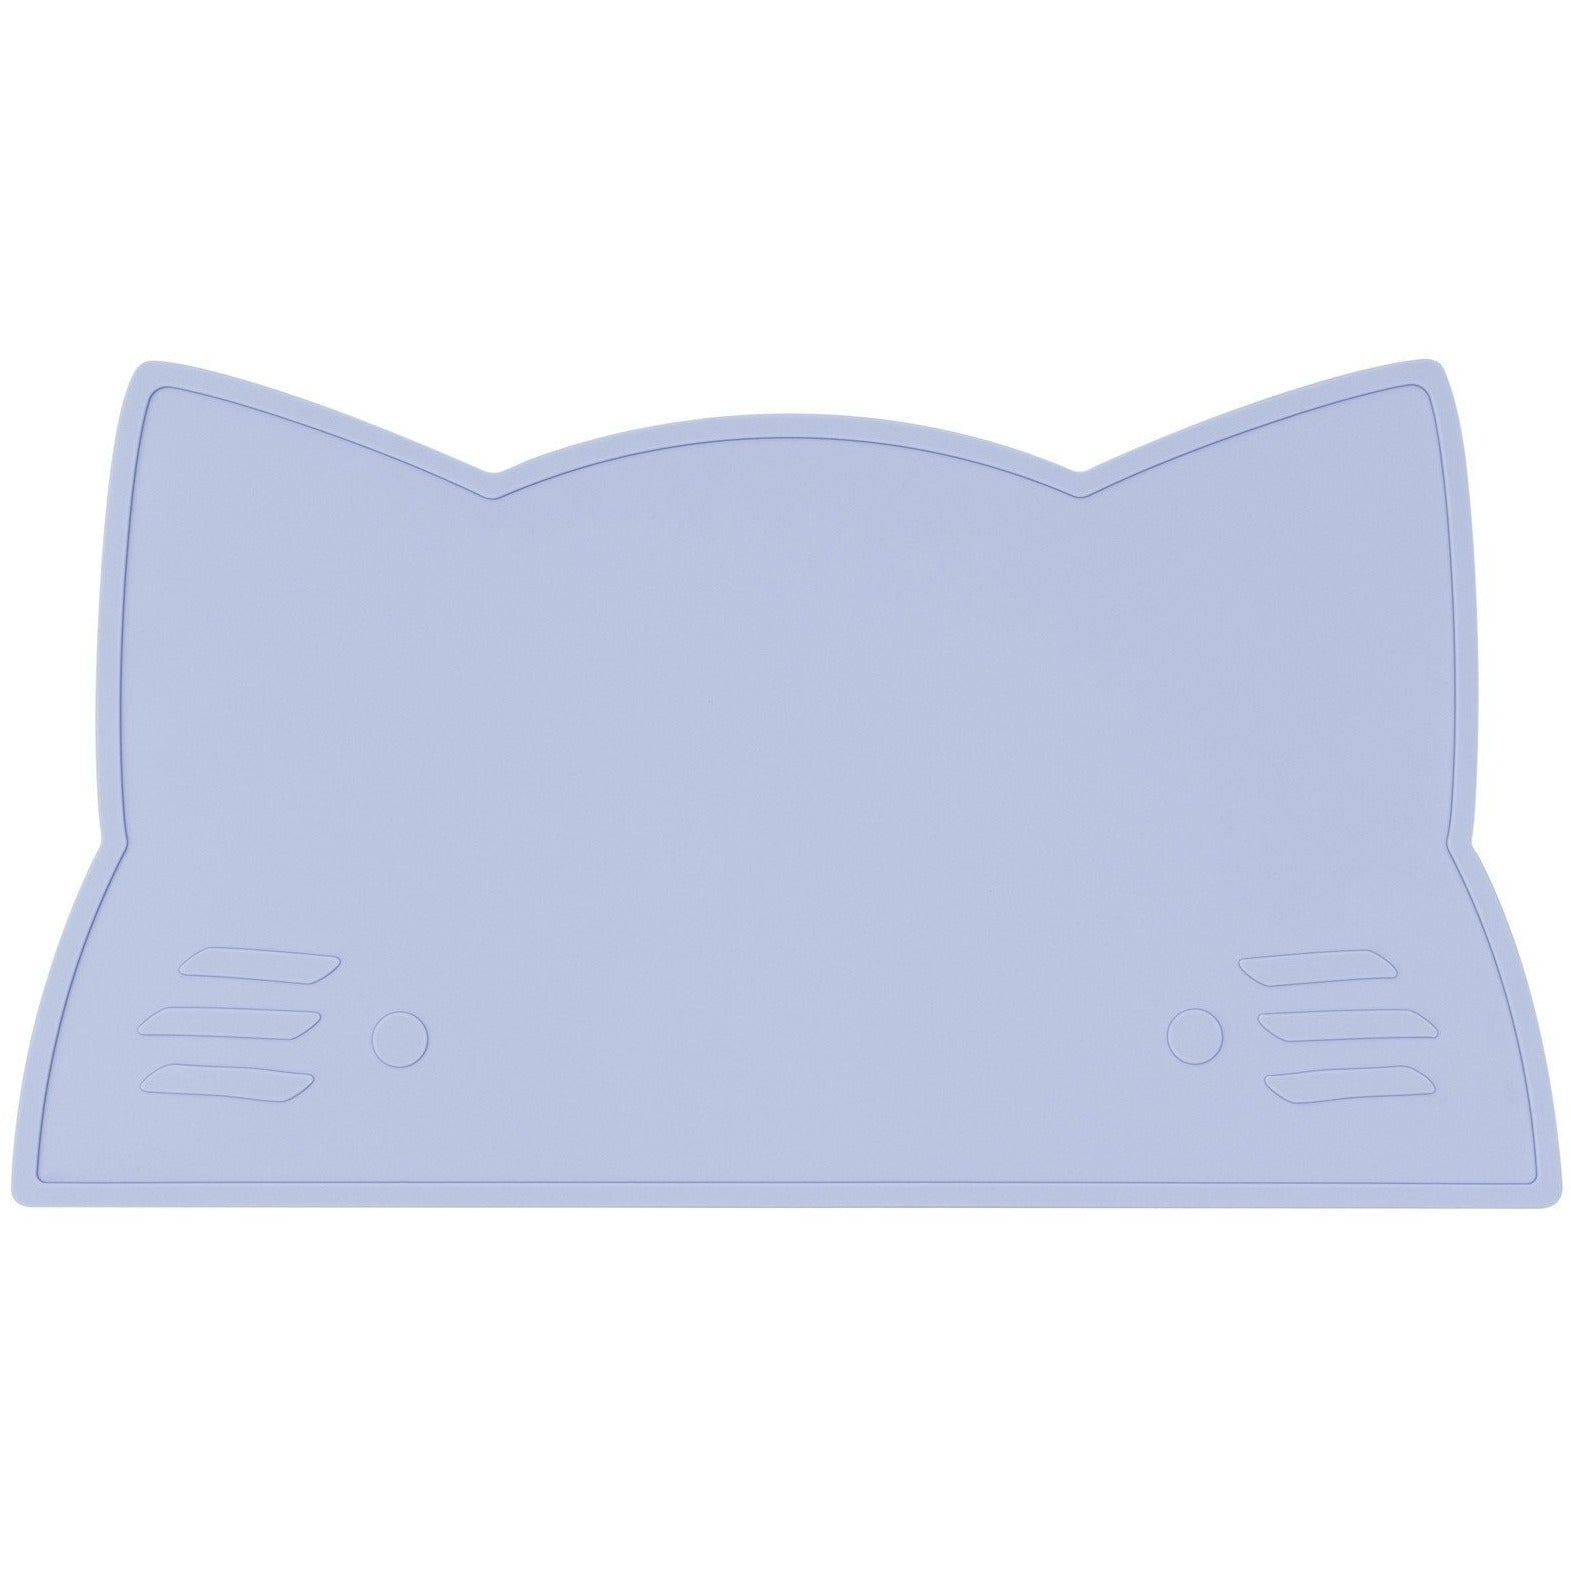 We Might Be Tiny Cat Placemat - Powder Blue